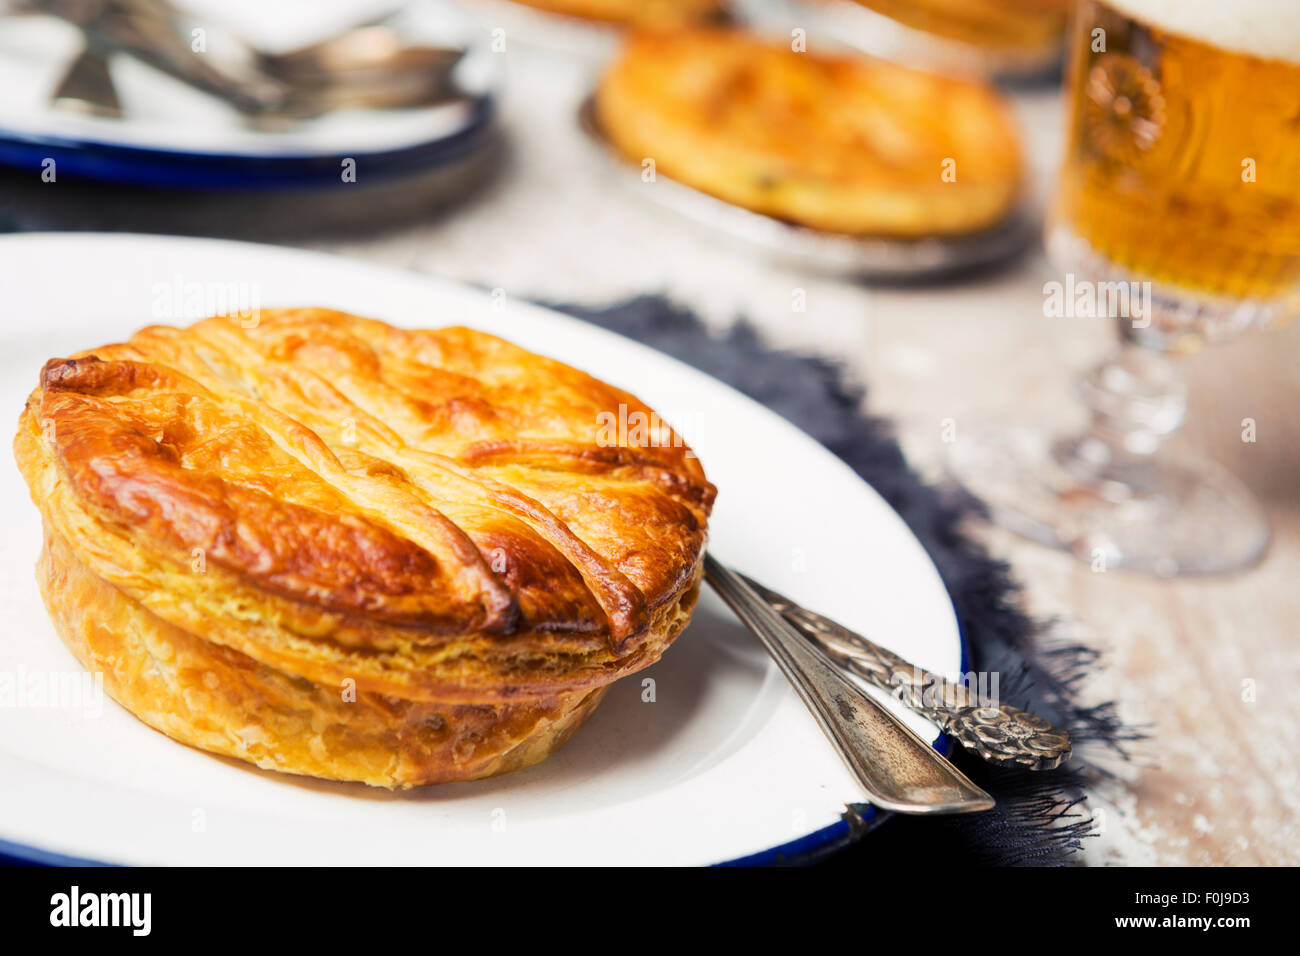 A homemade meat pie and beer on a rustic table. - Stock Image